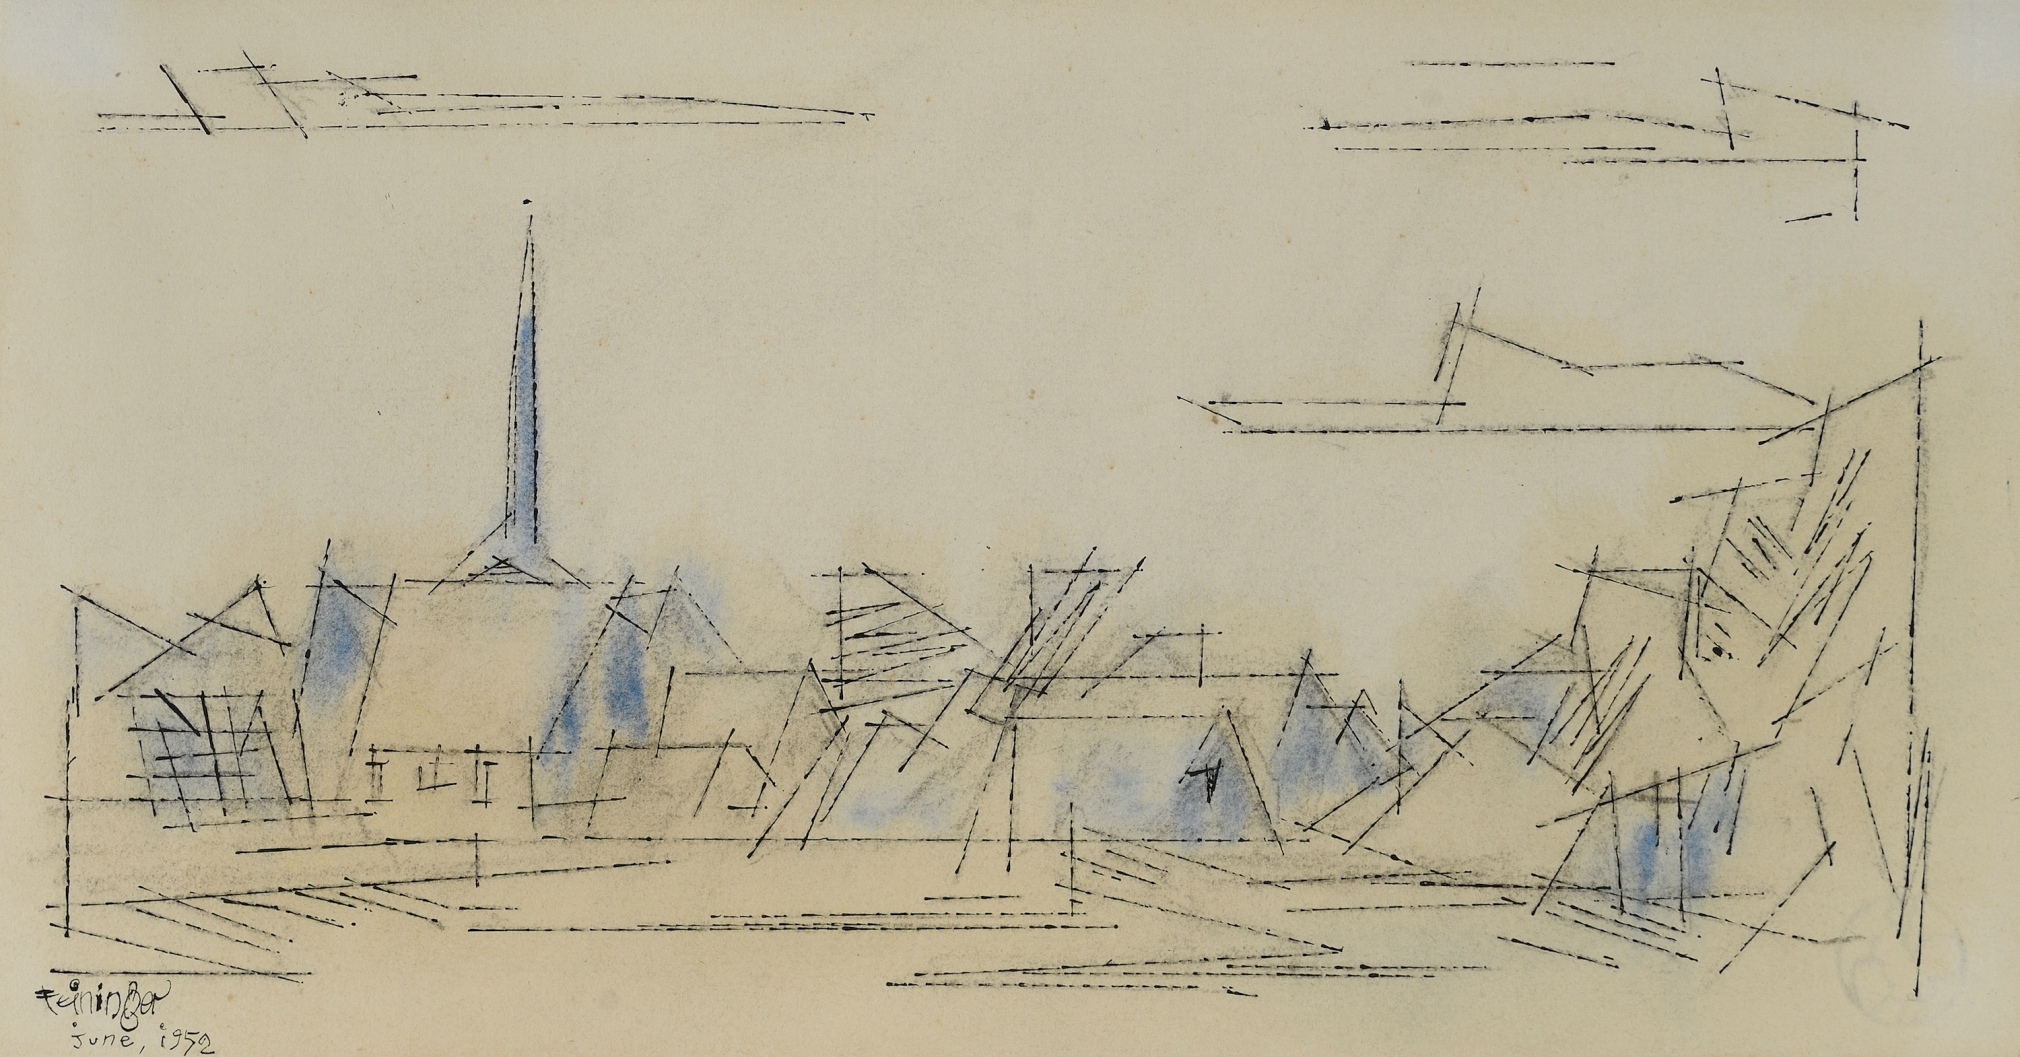 "Lyonel Feininger (1871-1956), (Village), 1952, Watercolor and ink on paper, 7 1/2 x 13 3/4 in. (19.1 x 34.9 cm), Signed and dated lower left: Feininger June, 1952, Inscribed verso: In old-time Remembrance, to Alli, from his old ""Papilep"" L.F., Aug. 26th 1952"